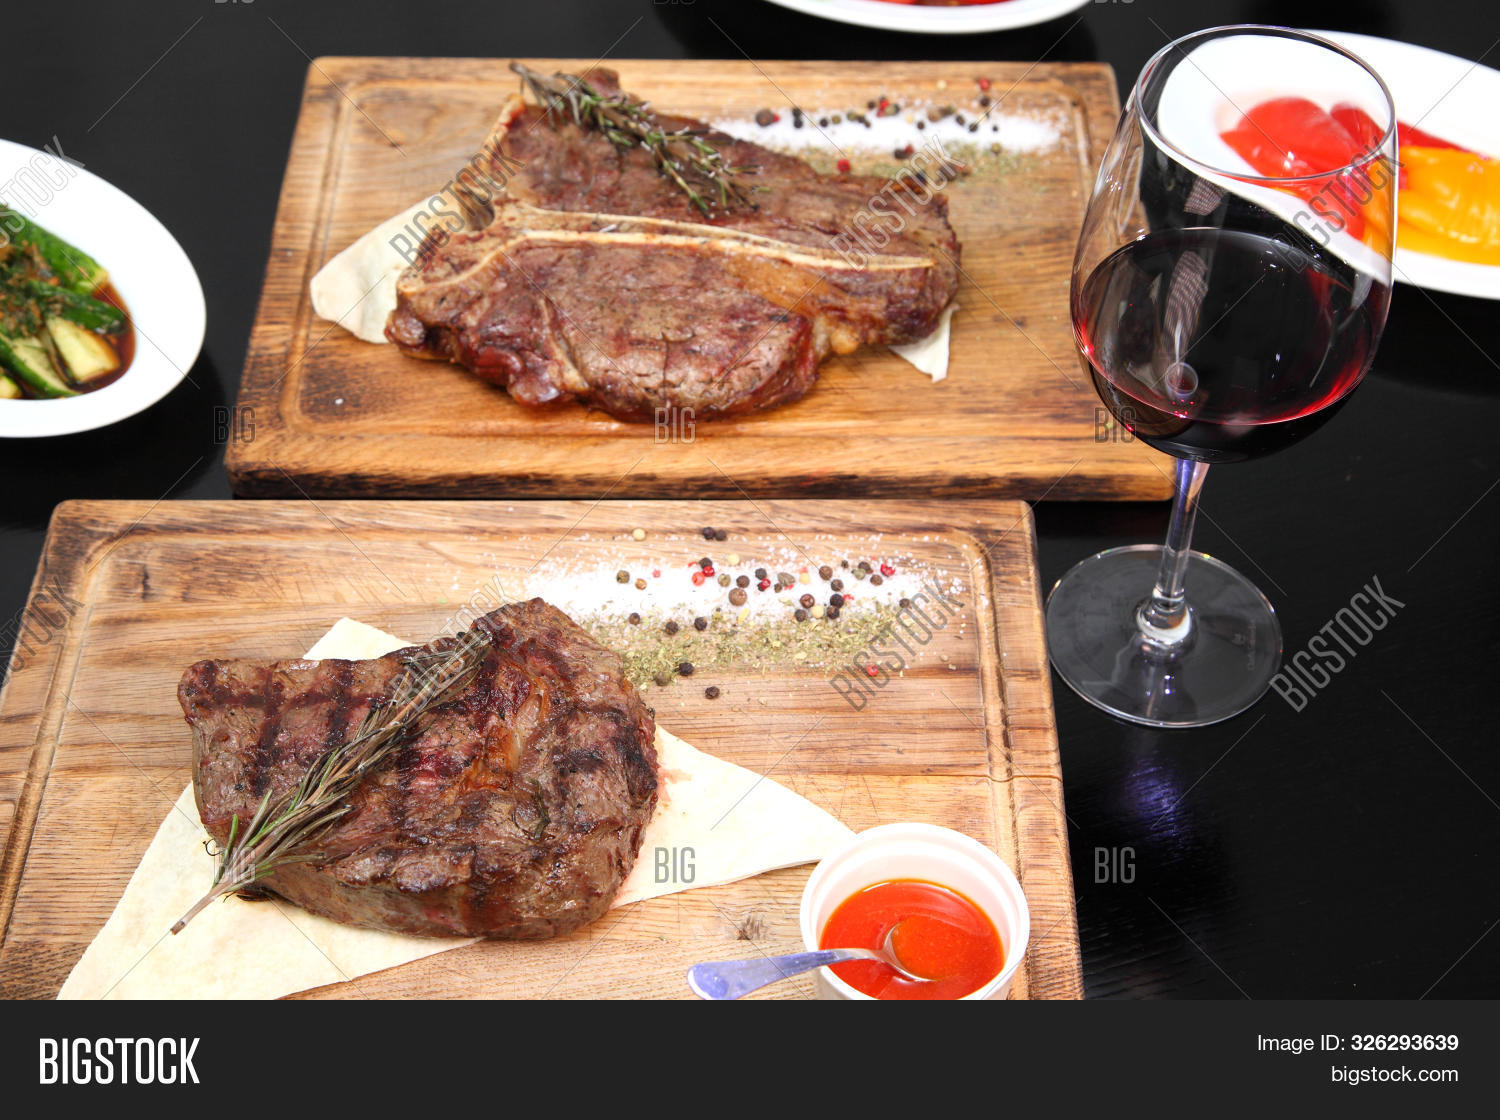 barbecue,bbq,beautiful,beef,board,cooked,cow,crockery,cut,dark,dinner,dish,eye,female,garnish,gourmet,grill,grilled,marbled,meal,meat,medium,menu,natural,people,pepper,piece,pork,preparation,protein,rare,raw,red,restaurant,rib,roast,roasted,rustic,sauce,seasoning,section,spice,steak,surface,table,treat,vegetable,woman,wood,wooden